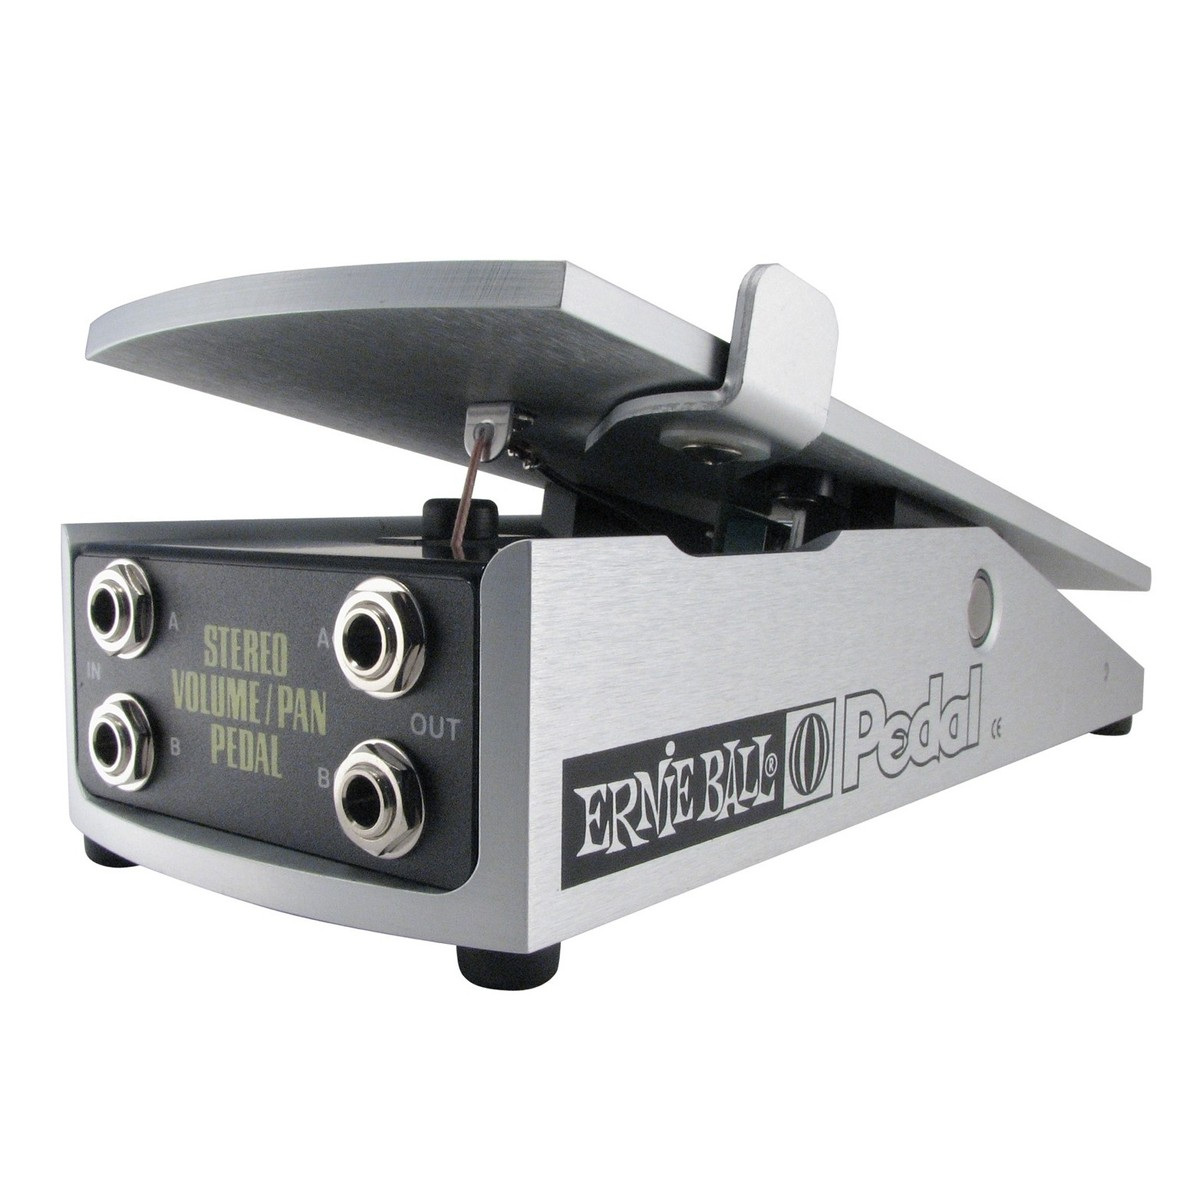 ernie ball stereo pan volume pedal at gear4music. Black Bedroom Furniture Sets. Home Design Ideas